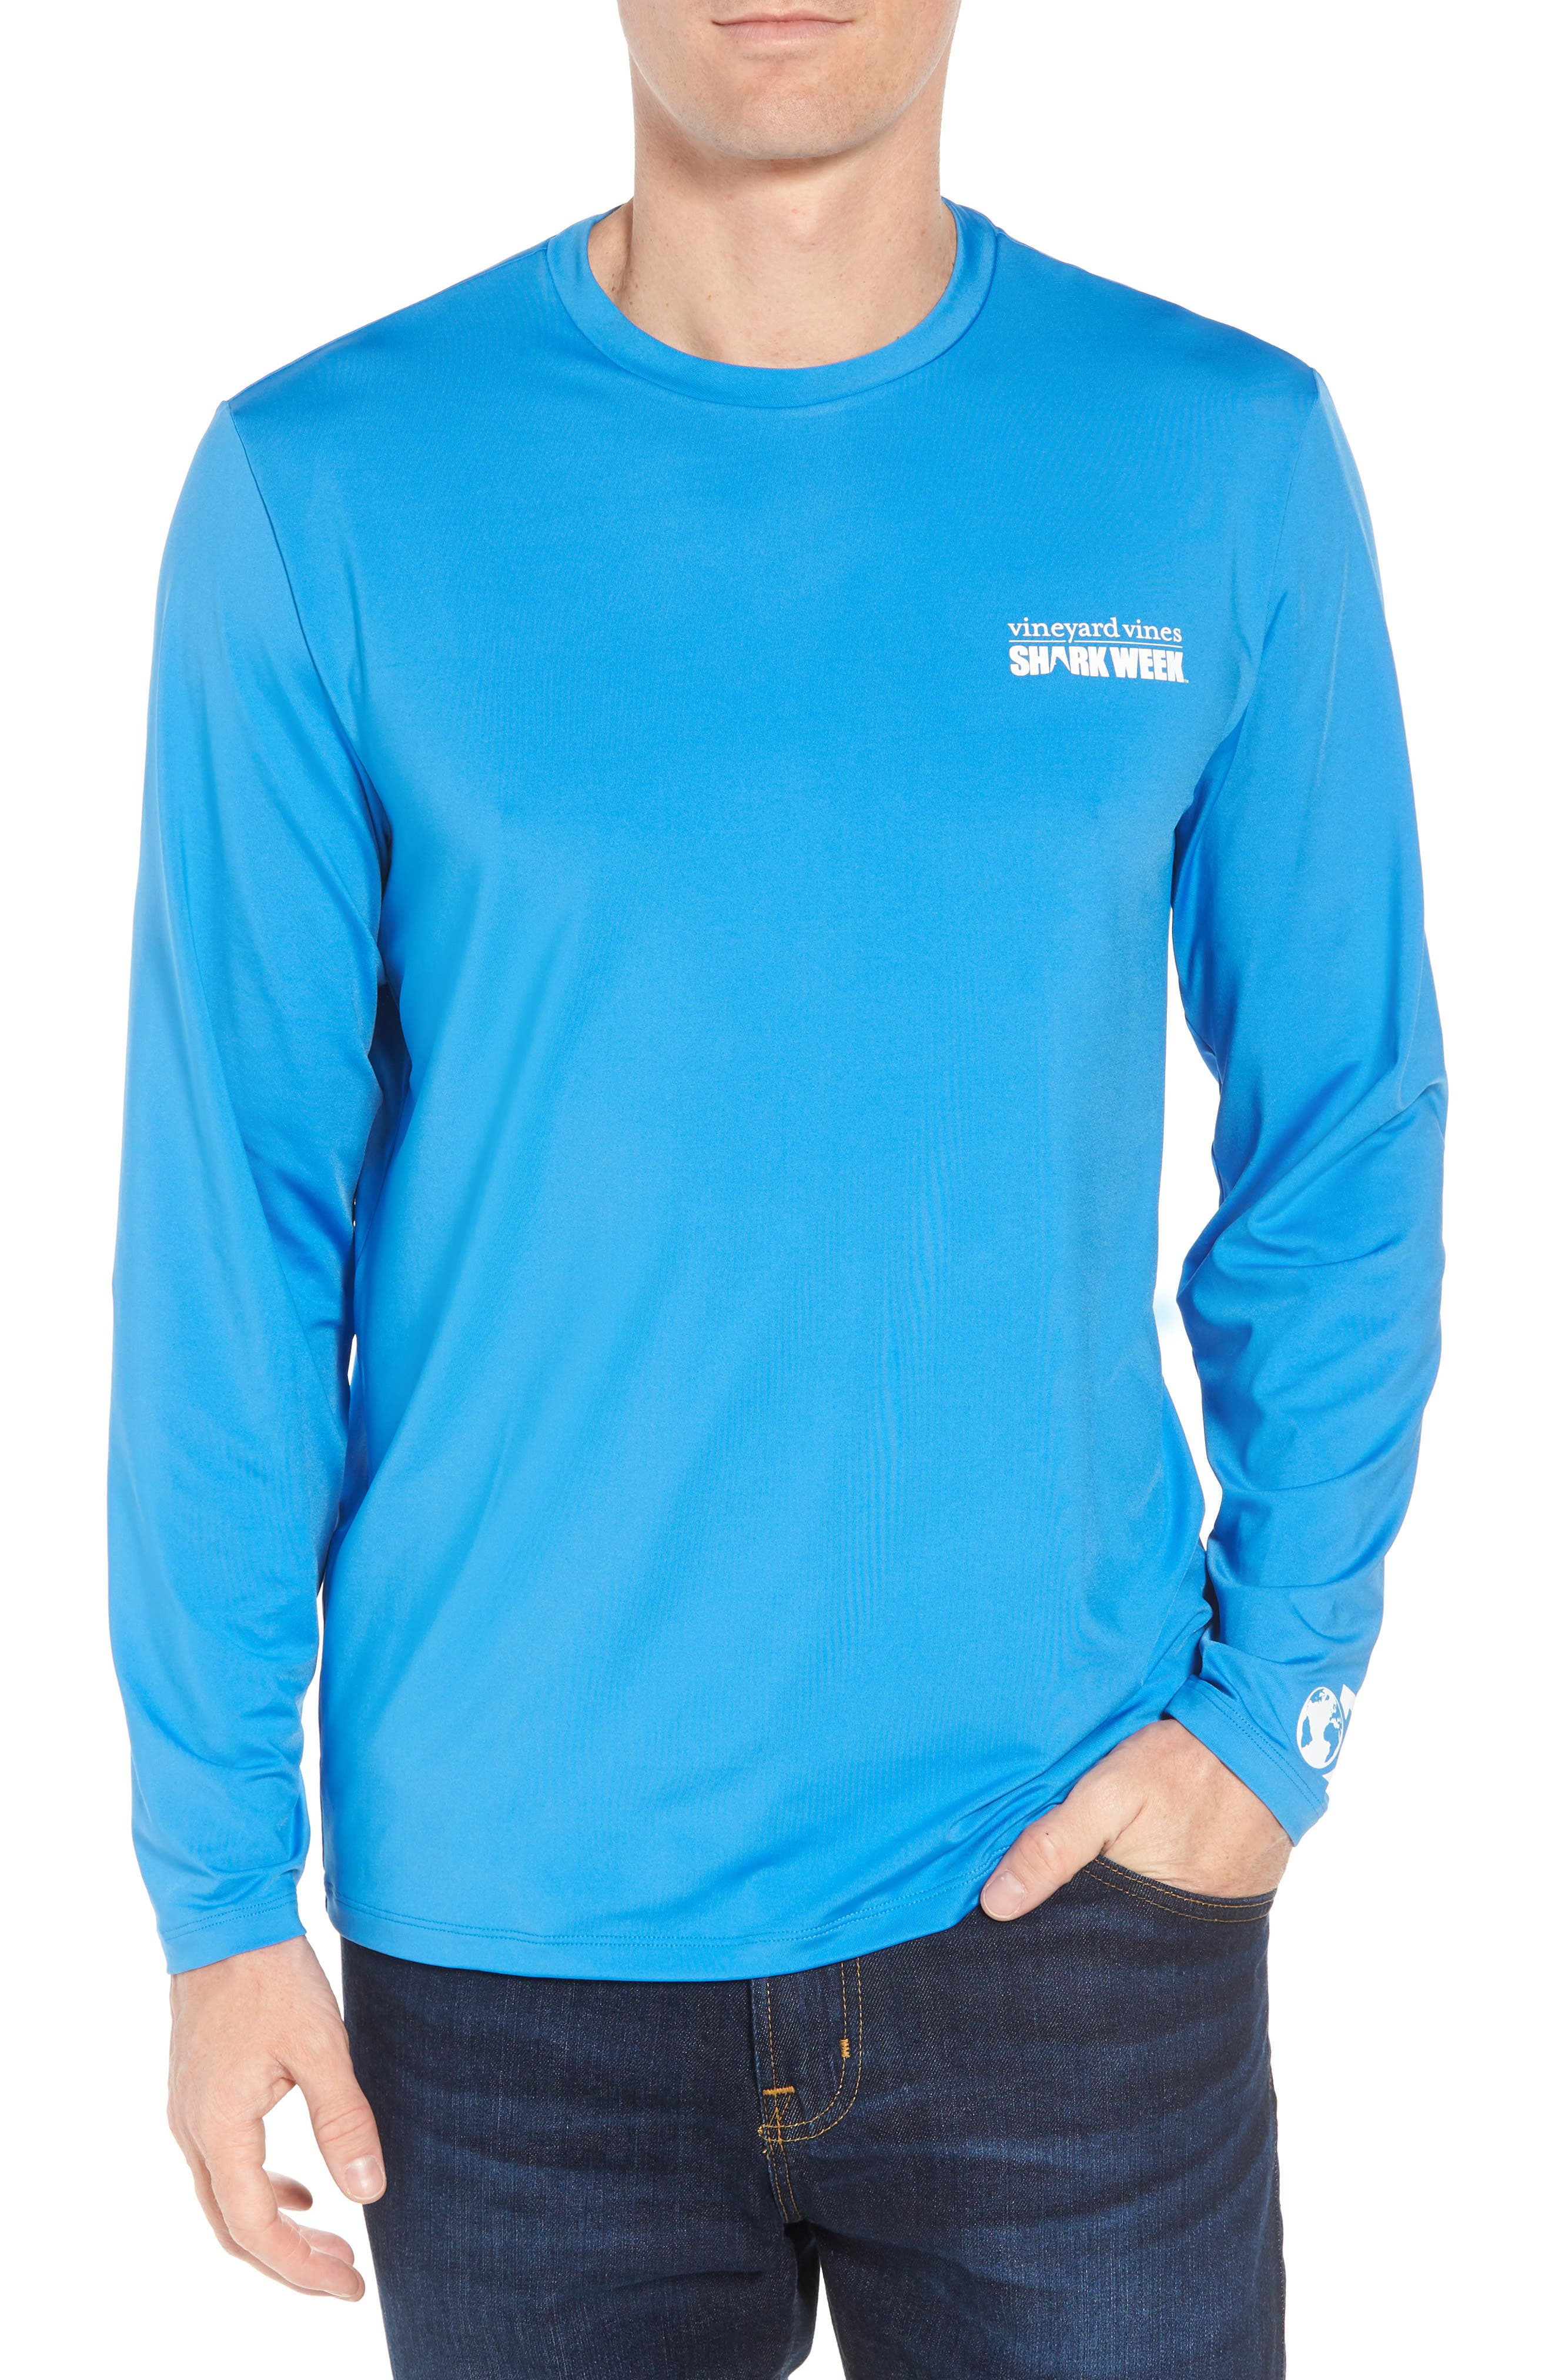 x Shark Week<sup>™</sup> Logo Long Sleeve T-Shirt,                             Main thumbnail 1, color,